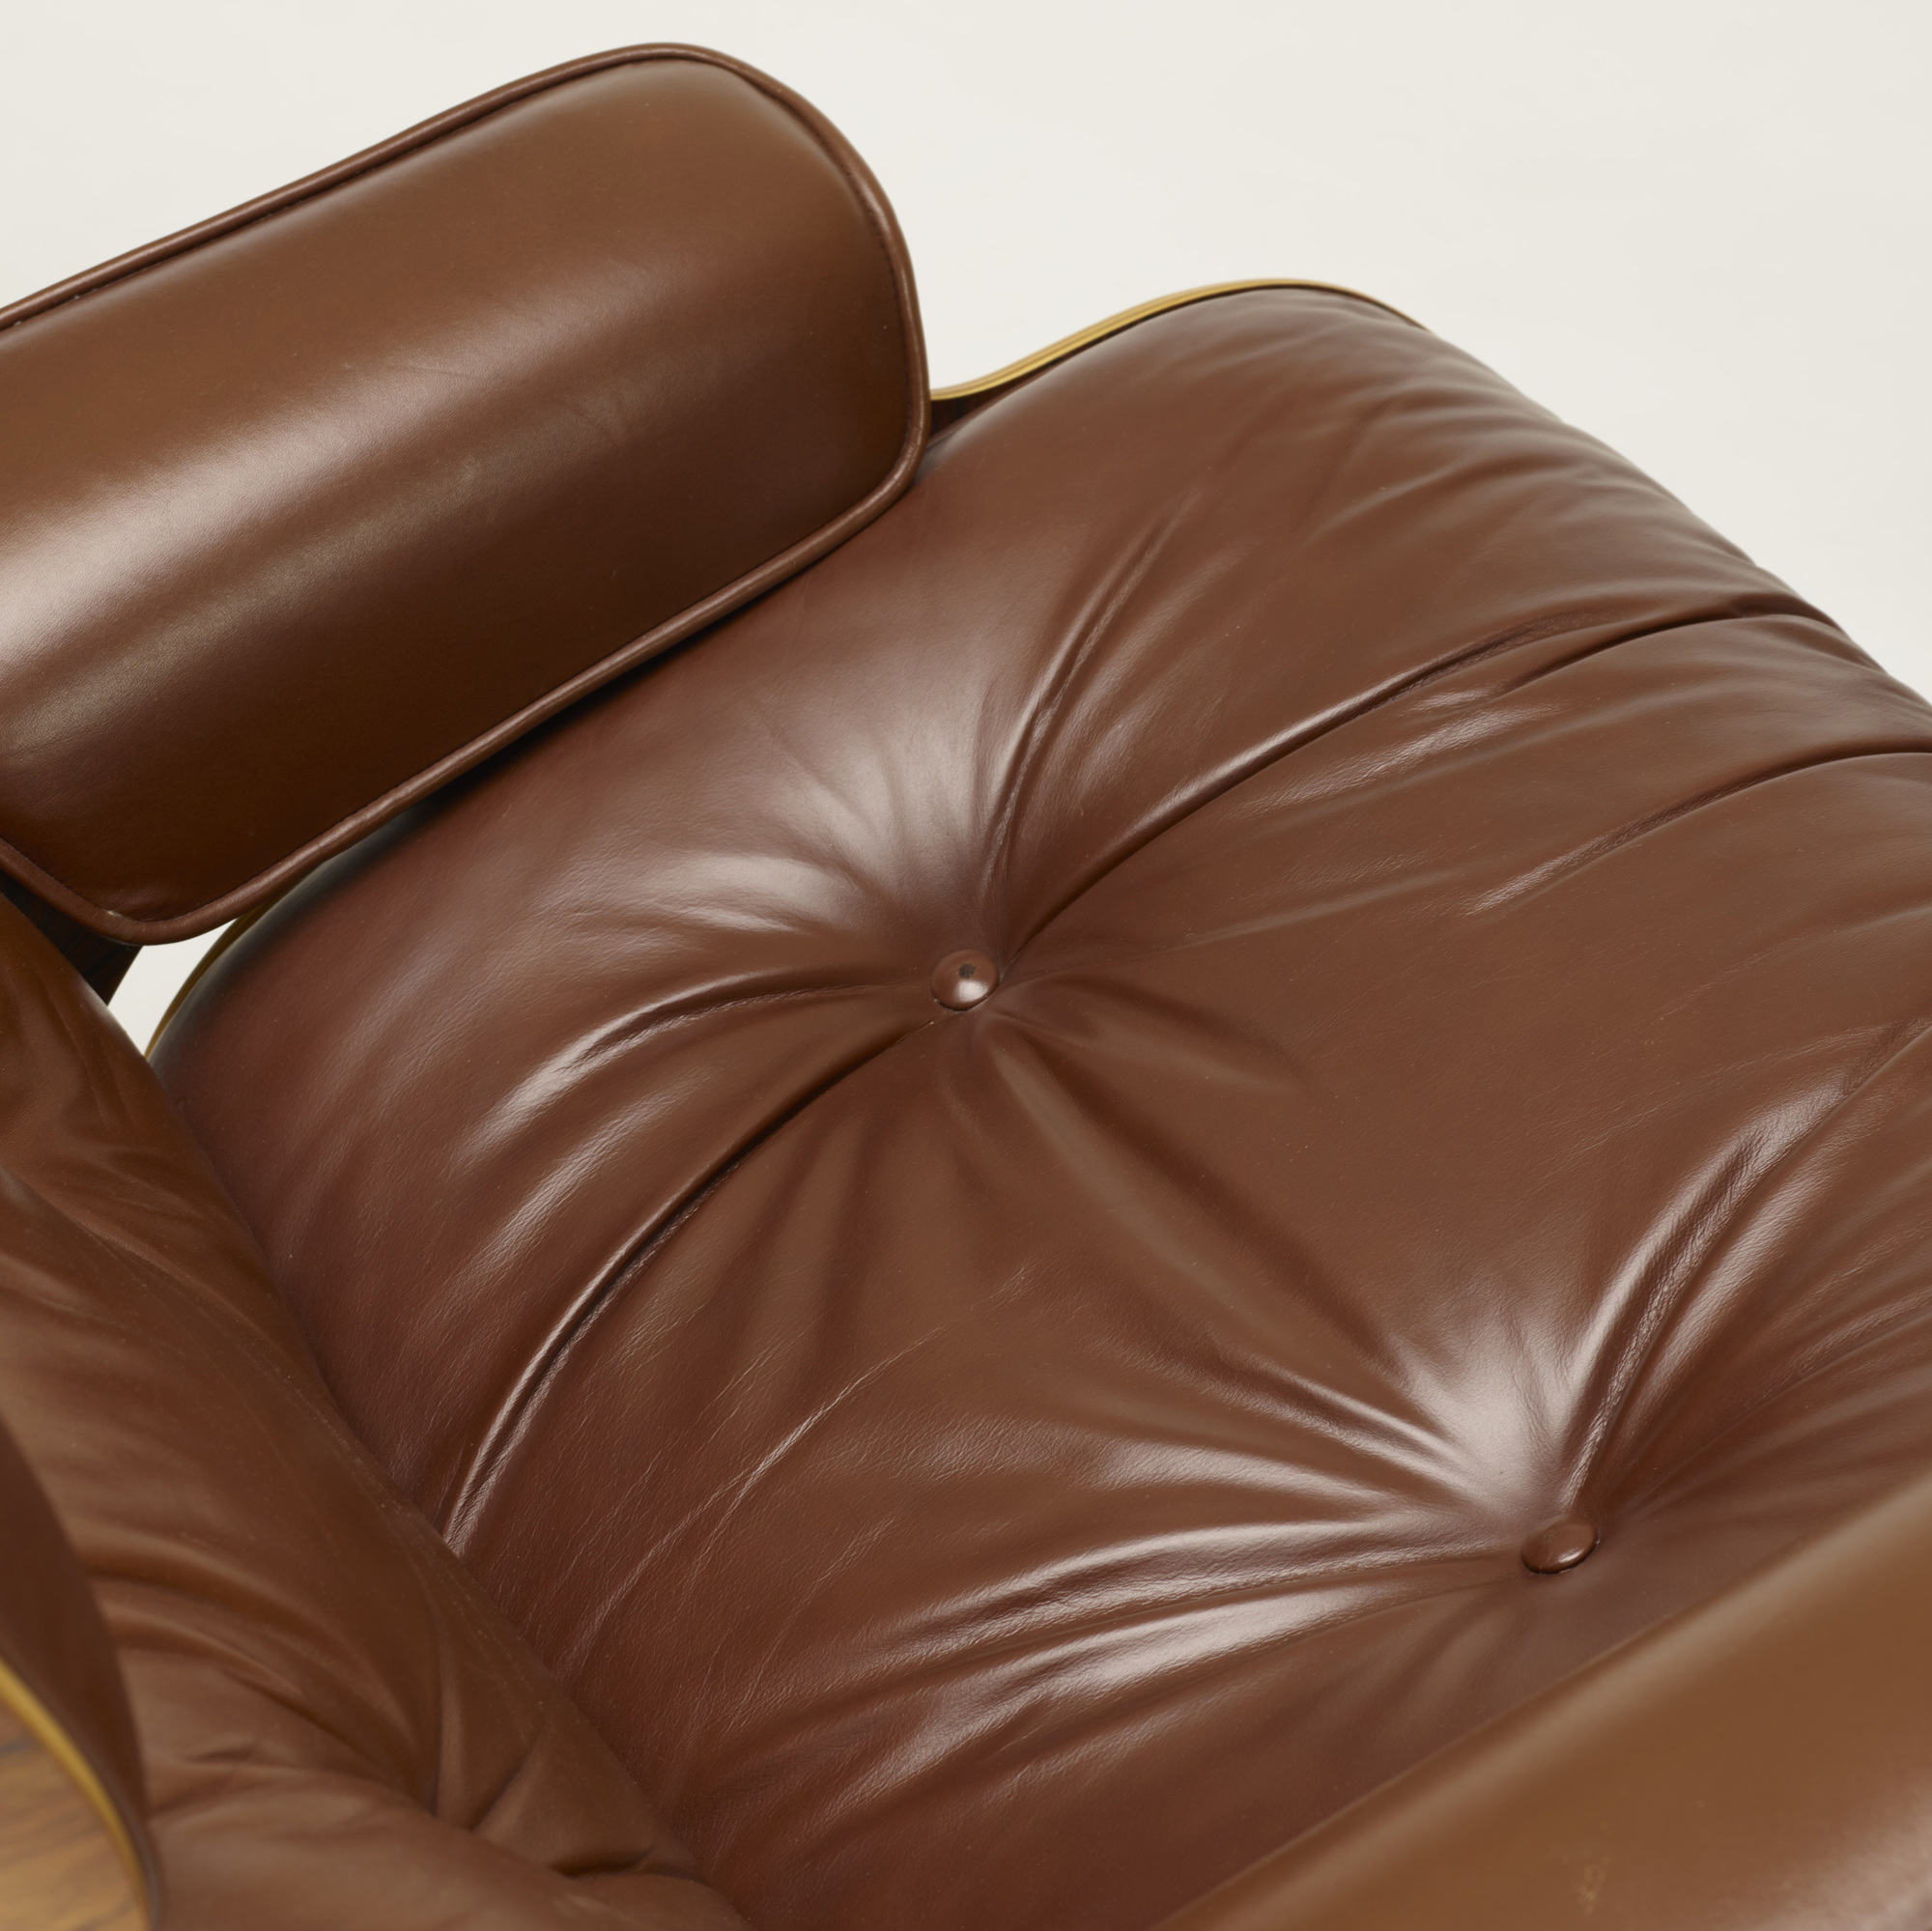 357: Charles and Ray Eames / 670 lounge chair and 671 ottoman (5 of 6)